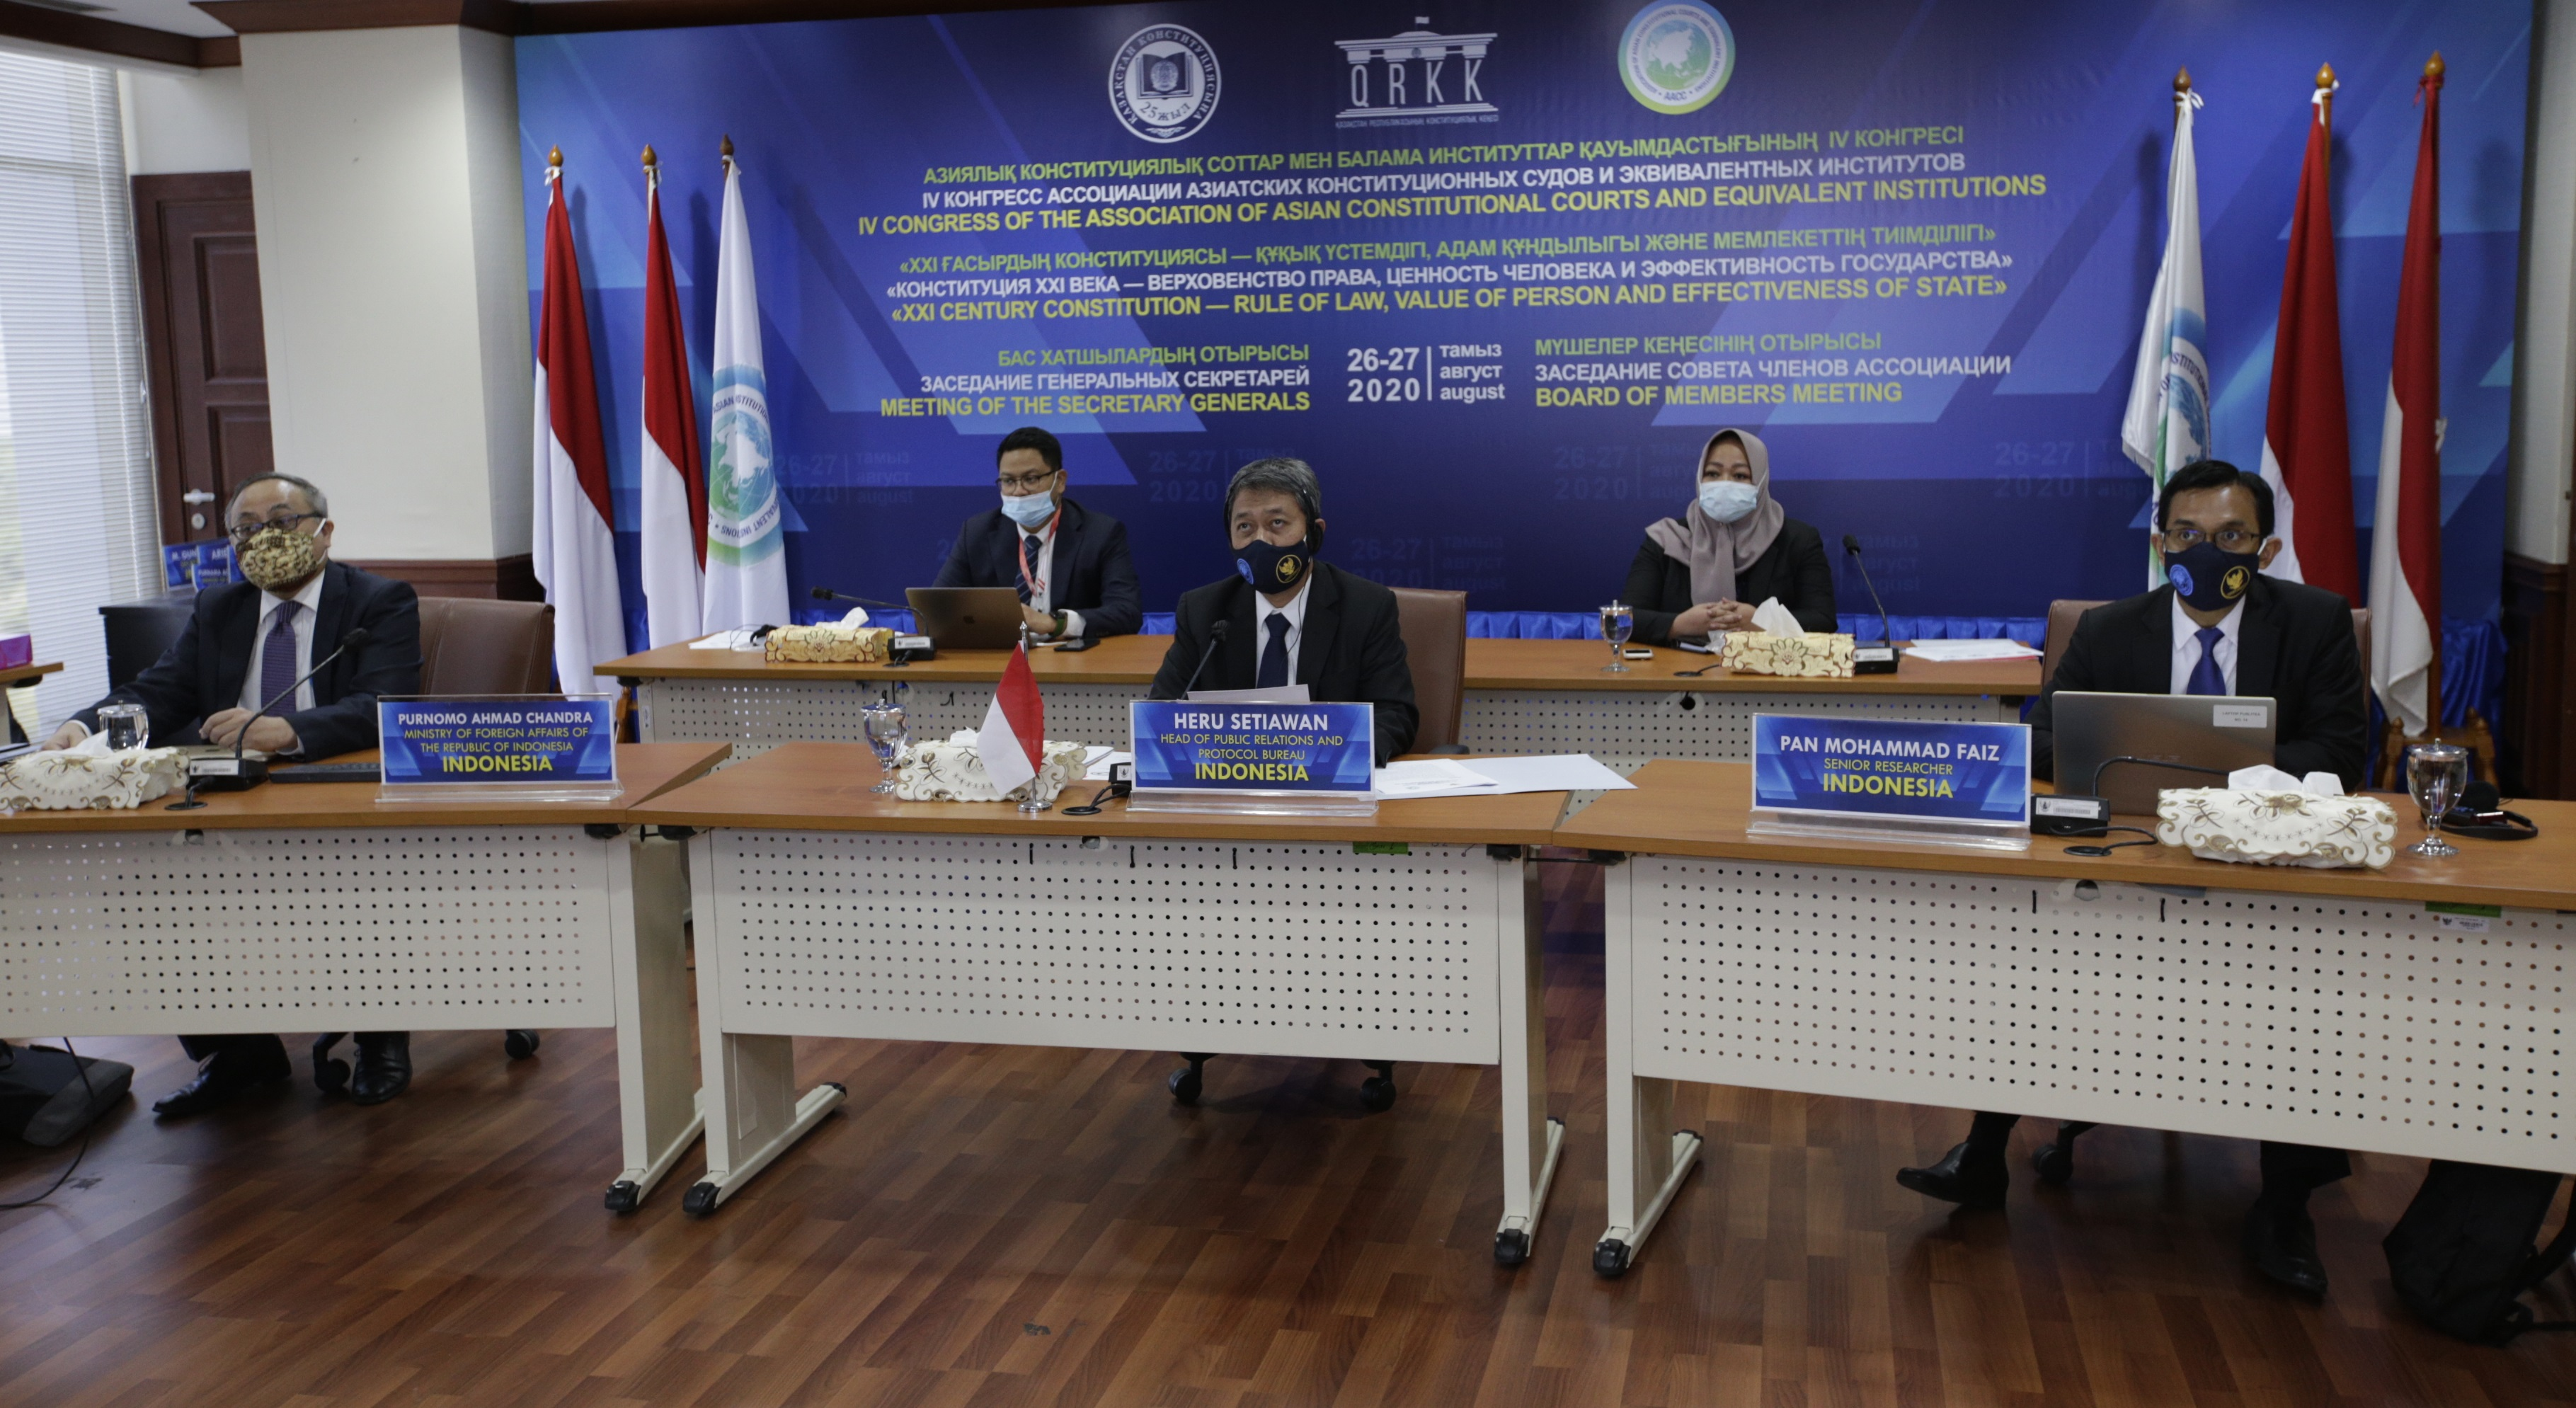 Indonesia Reports AACC Developments as Permanent Secretariat for Planning and Coordination